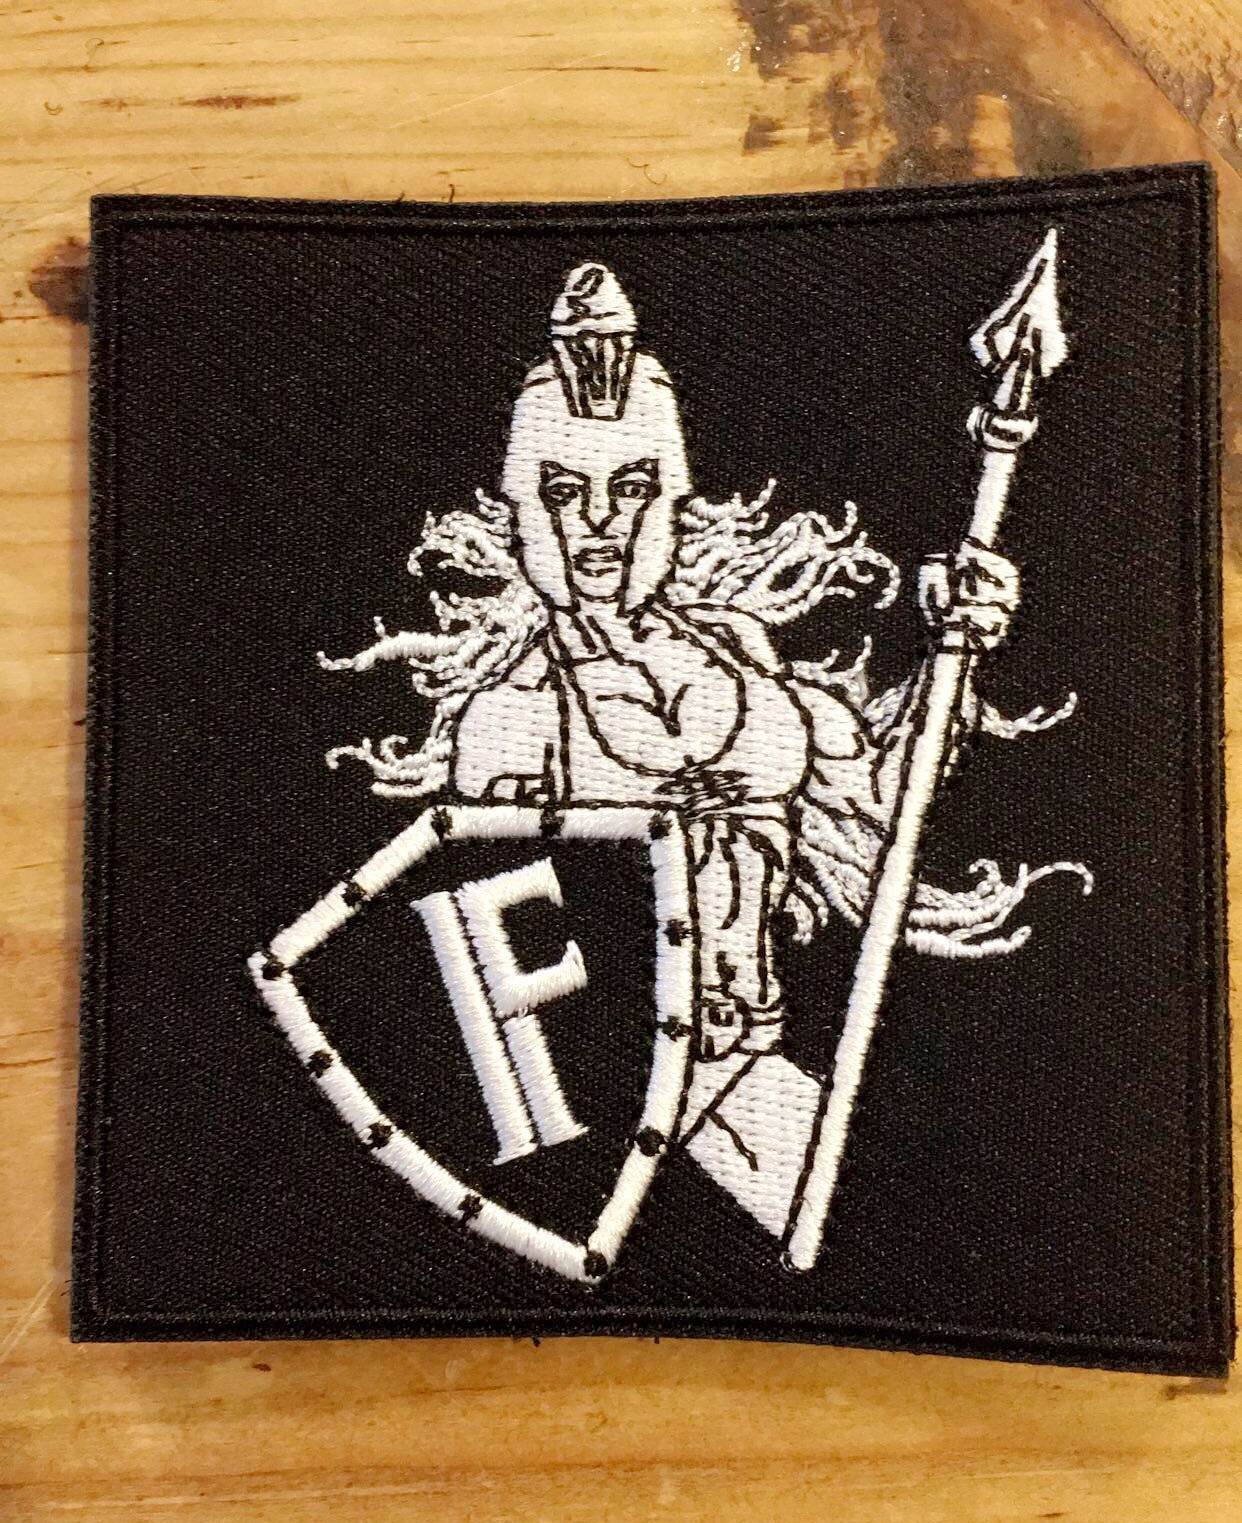 Female spartan moral patch